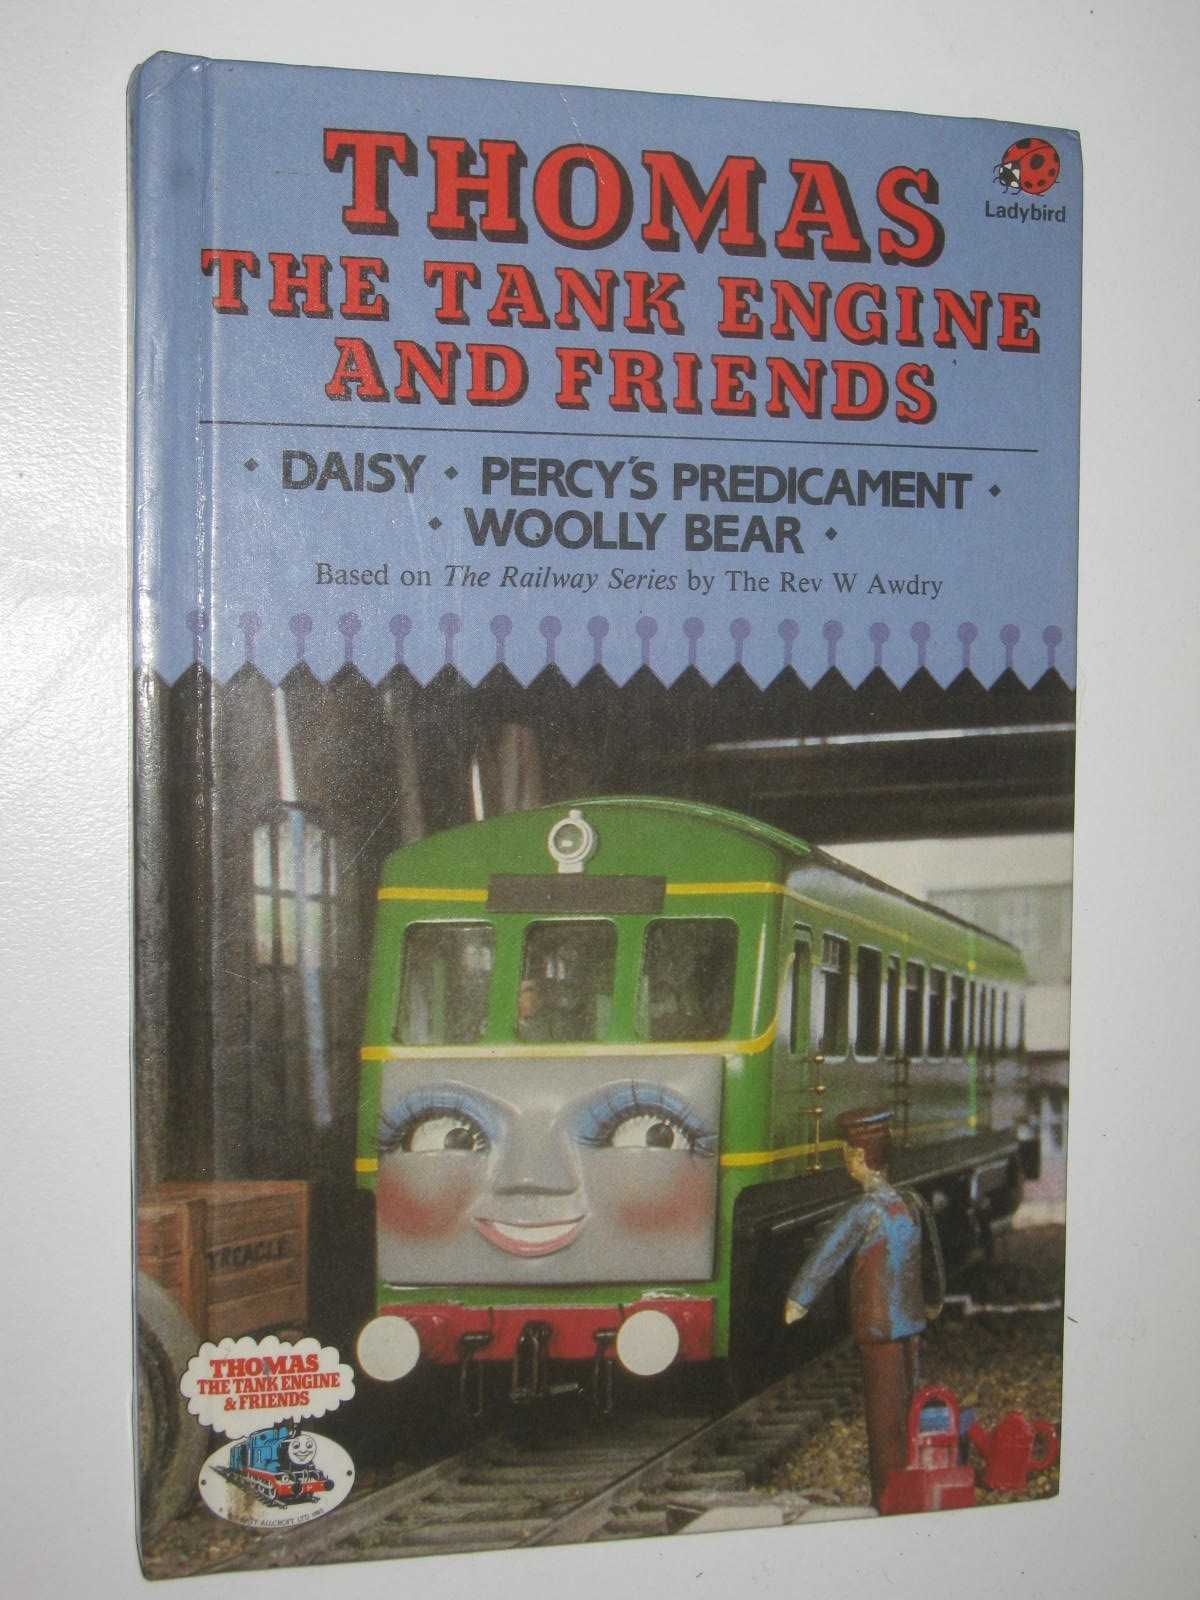 Image for Daisy; Percy's Predicment; Woolly Bear - Thomas the Tank Engine and Friends Series